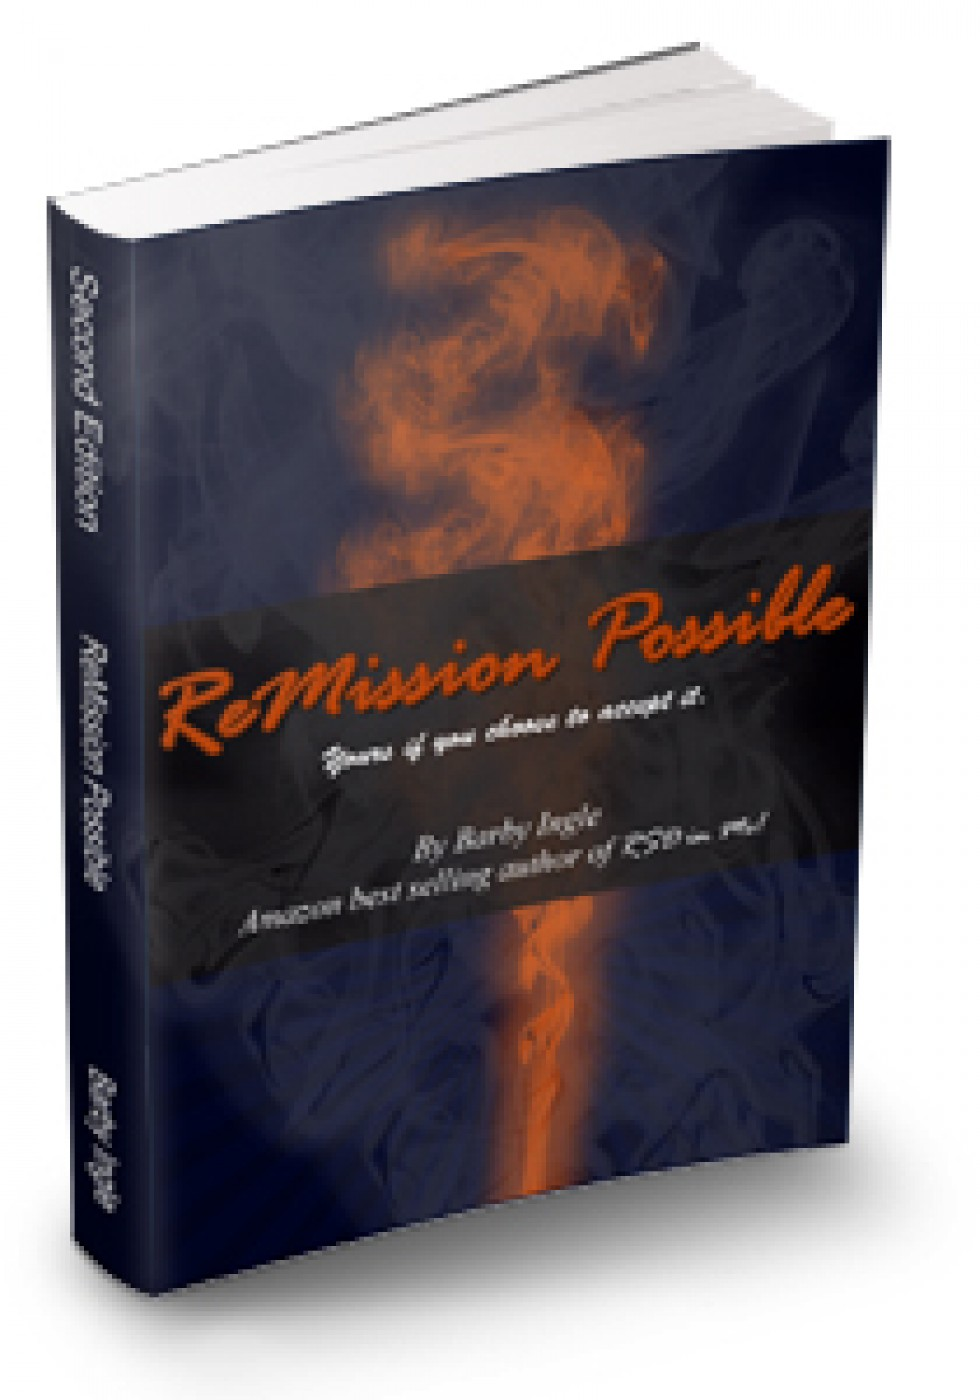 ReMission Possible